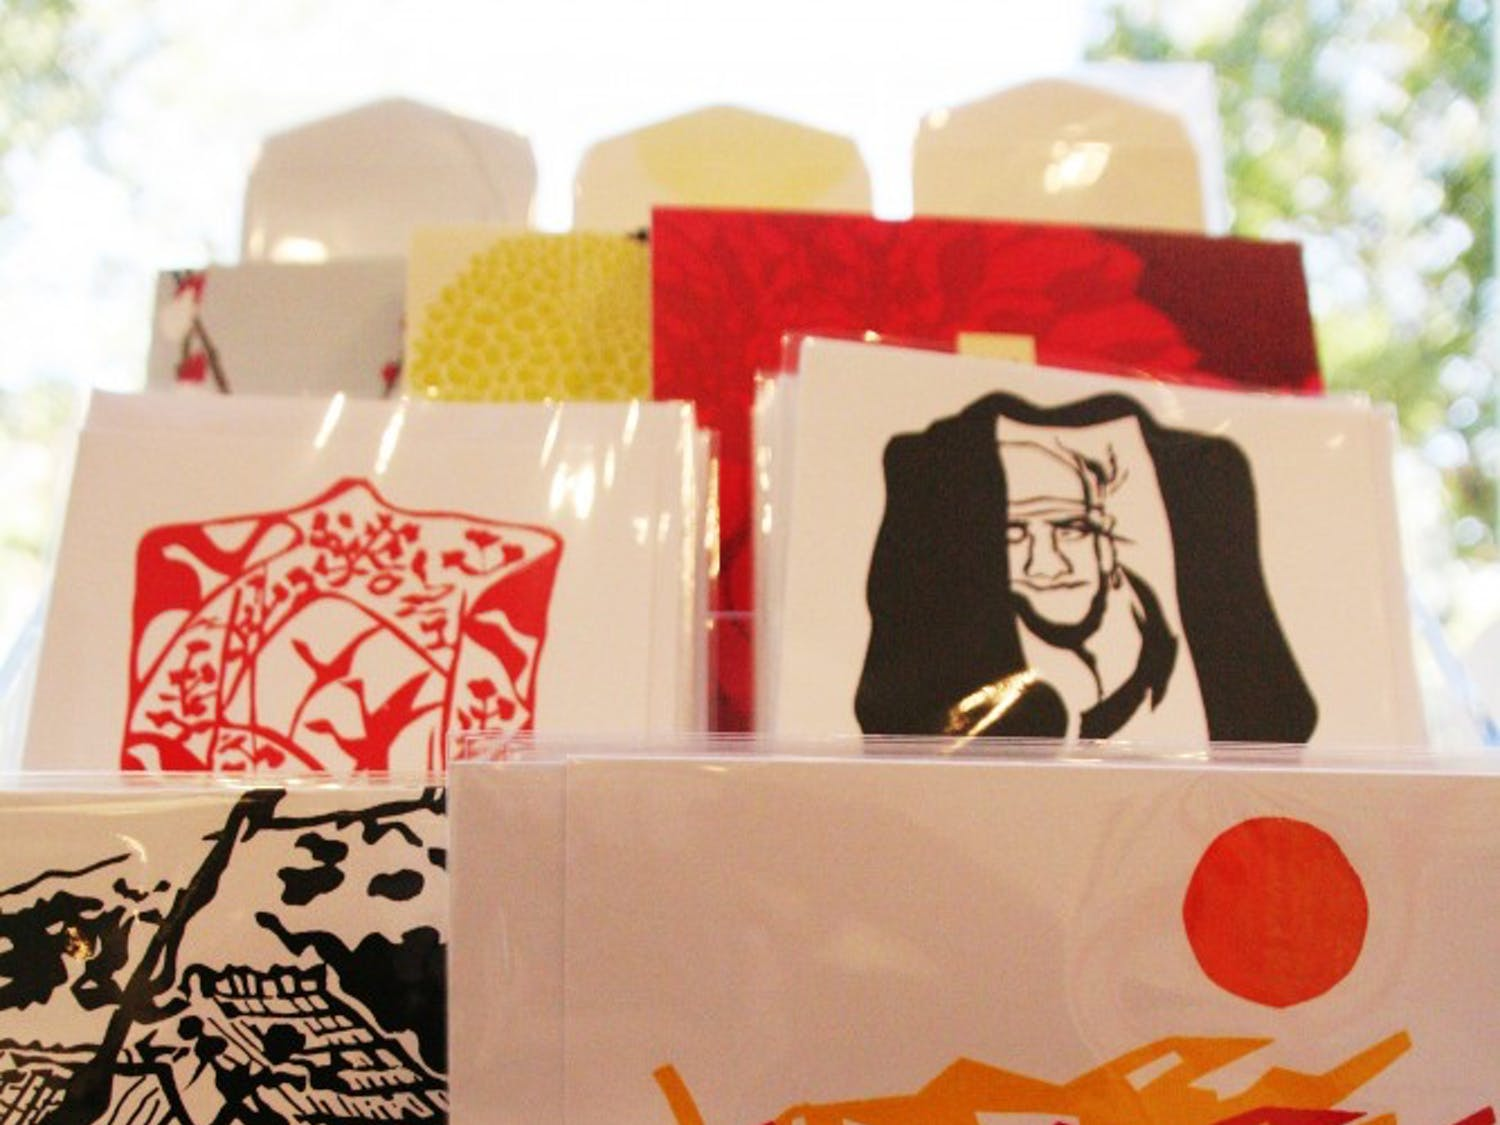 The Ackland Art Museum in-store market is opening this Thursday (10/11/12) and will feature Japanese crafts and products that are a mix of tradition and contemporary. The market will feature silkscreen prints by local artist Vidabeth Benson. The prints are hand-pulled and limited editions that reflect her years traveling to and living in Japan.